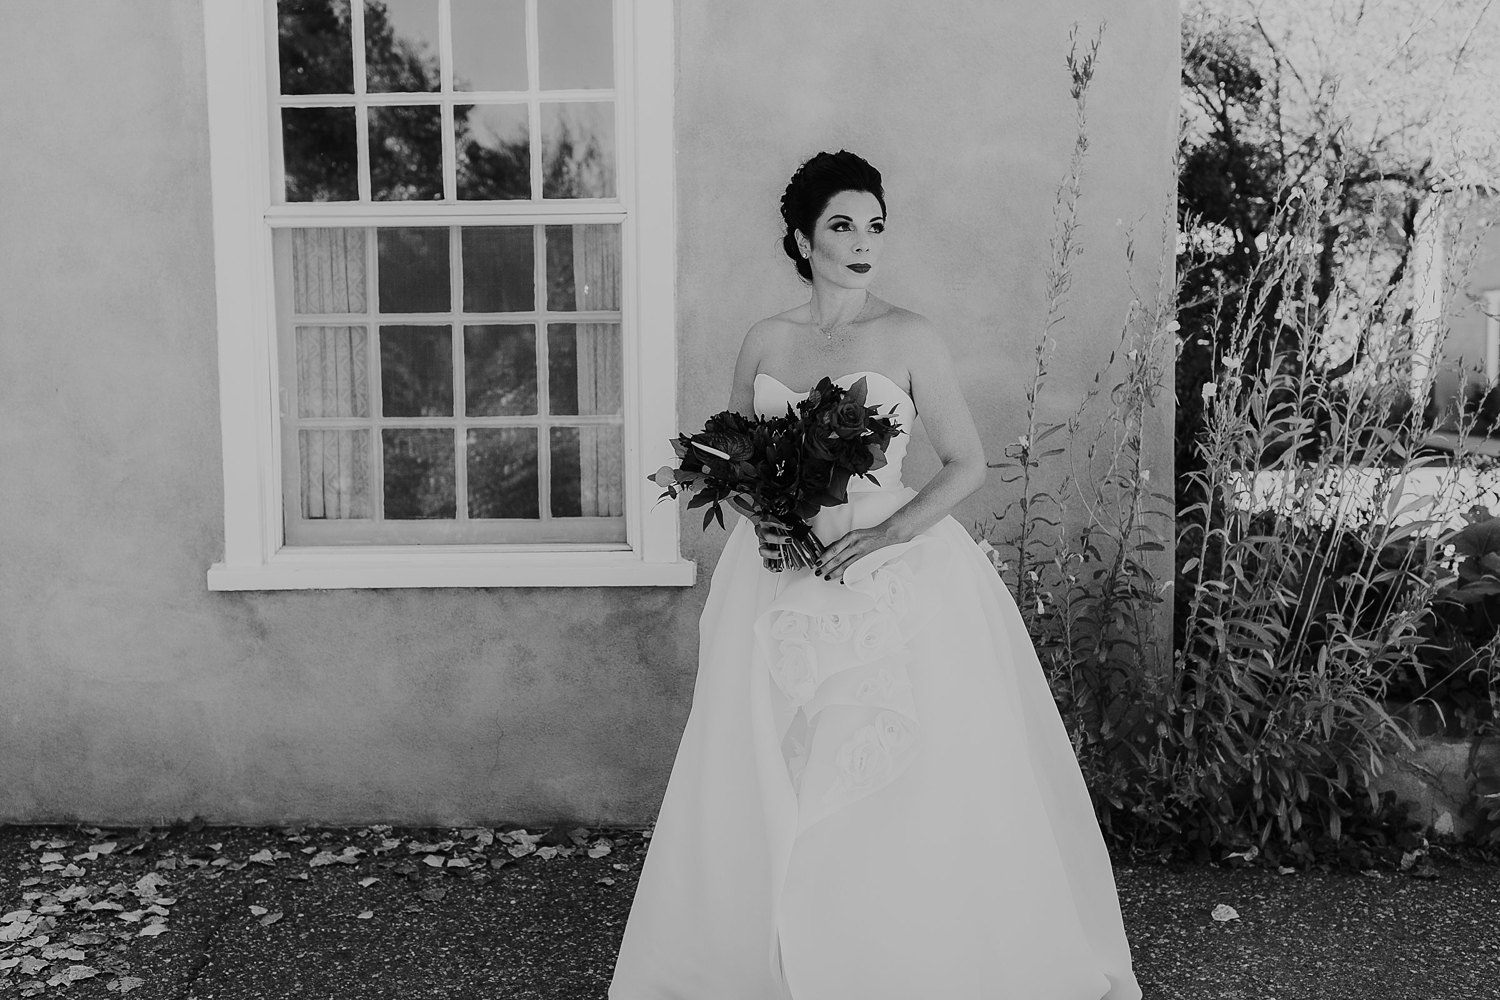 Alicia+lucia+photography+-+albuquerque+wedding+photographer+-+santa+fe+wedding+photography+-+new+mexico+wedding+photographer+-+los+poblanos+wedding+-+los+poblanos+fall+wedding+-+los+poblanos+october+wedding_0030.jpg